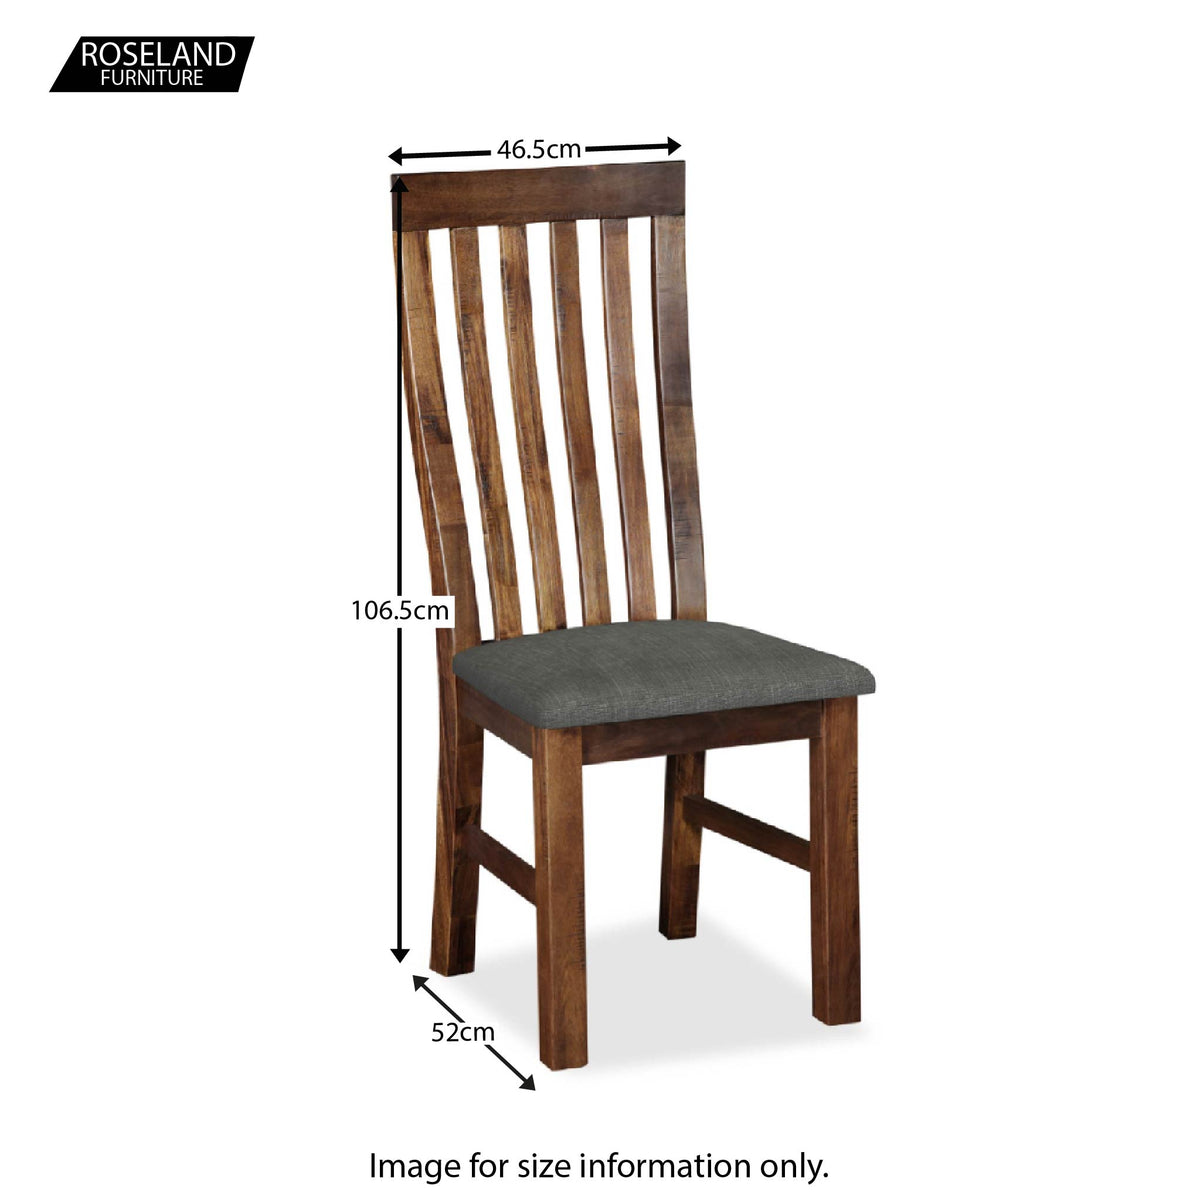 Dimensions - Ladock Dining Chair